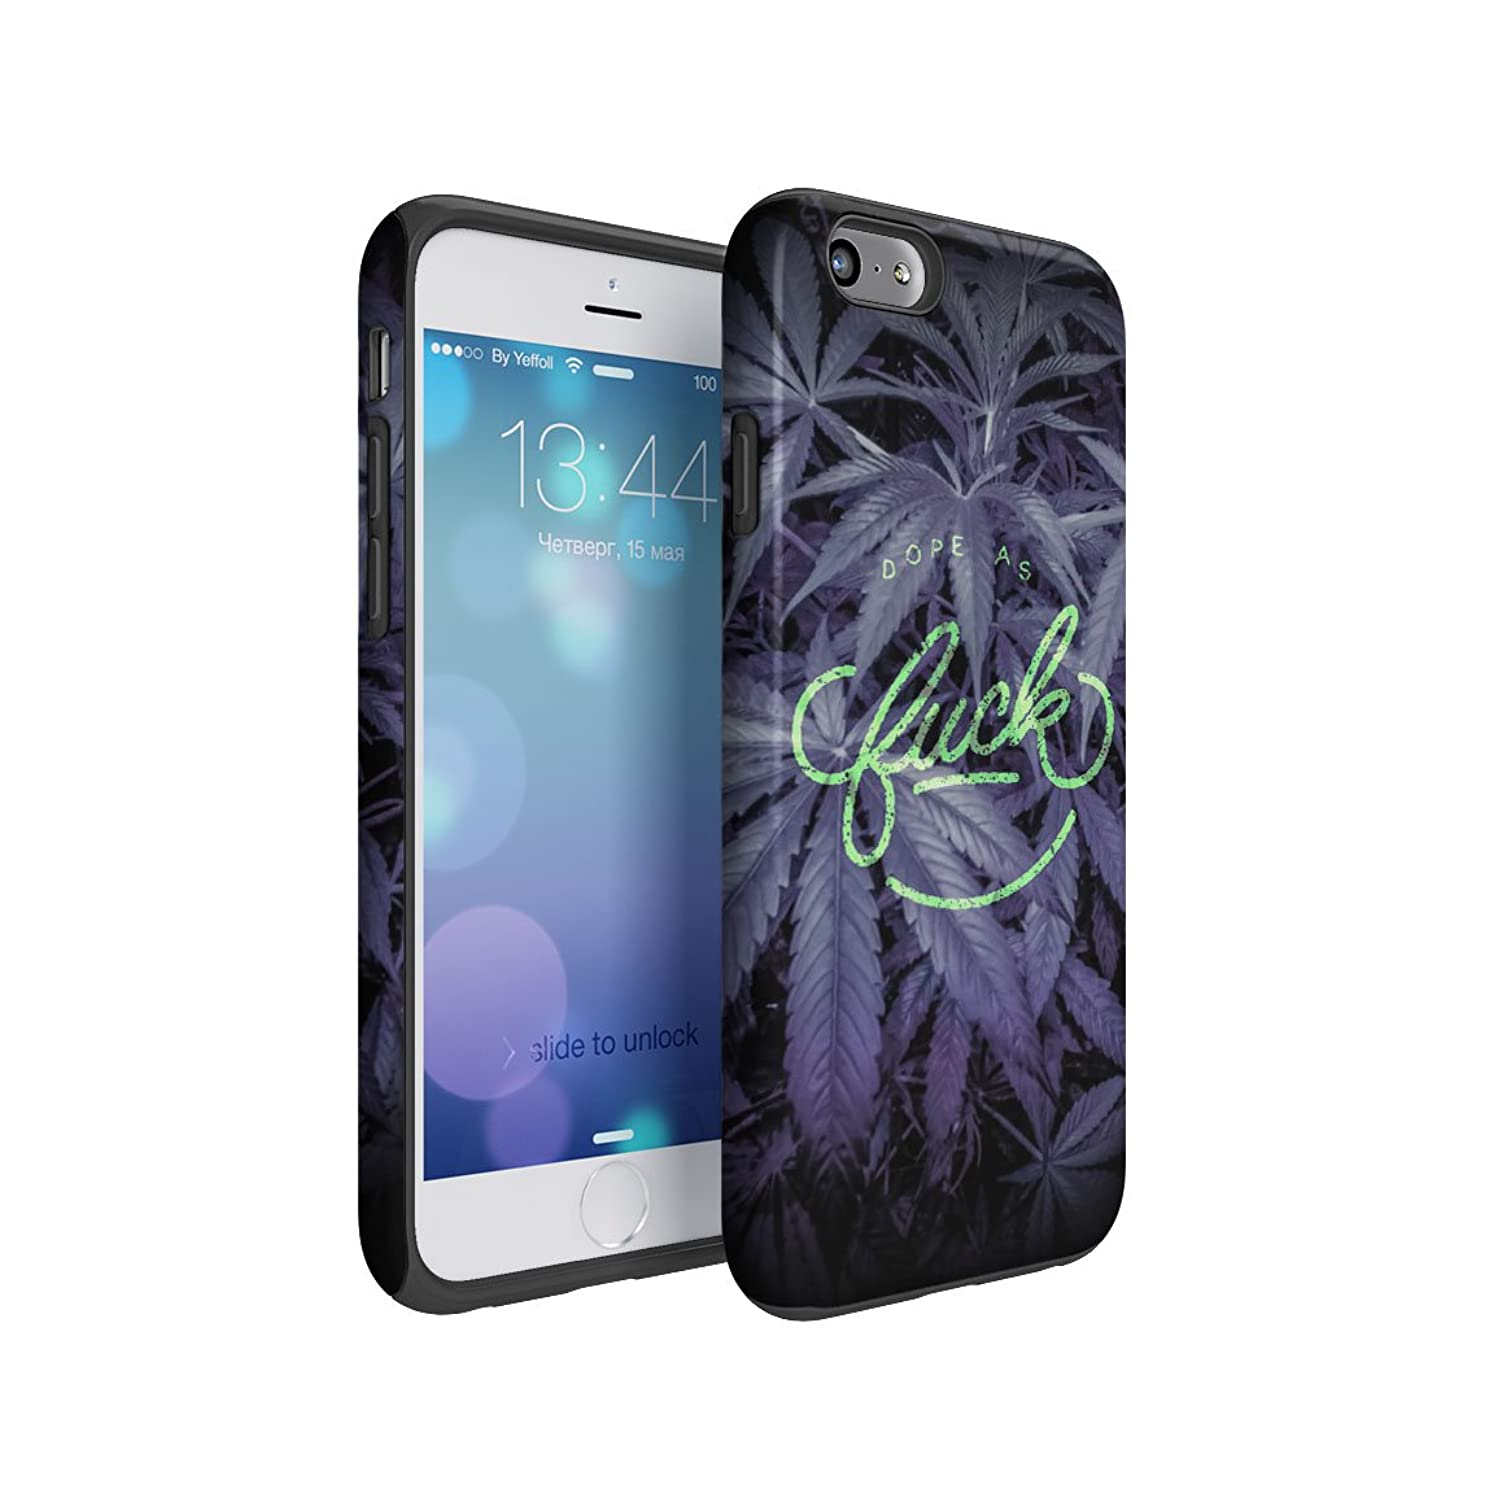 Dope As Fuck Cannabis Leaves Hard Plastic Shell & TPU Bumper Double Layer Tough Phone Case For Apple iPhone 6 & iPhone 6s